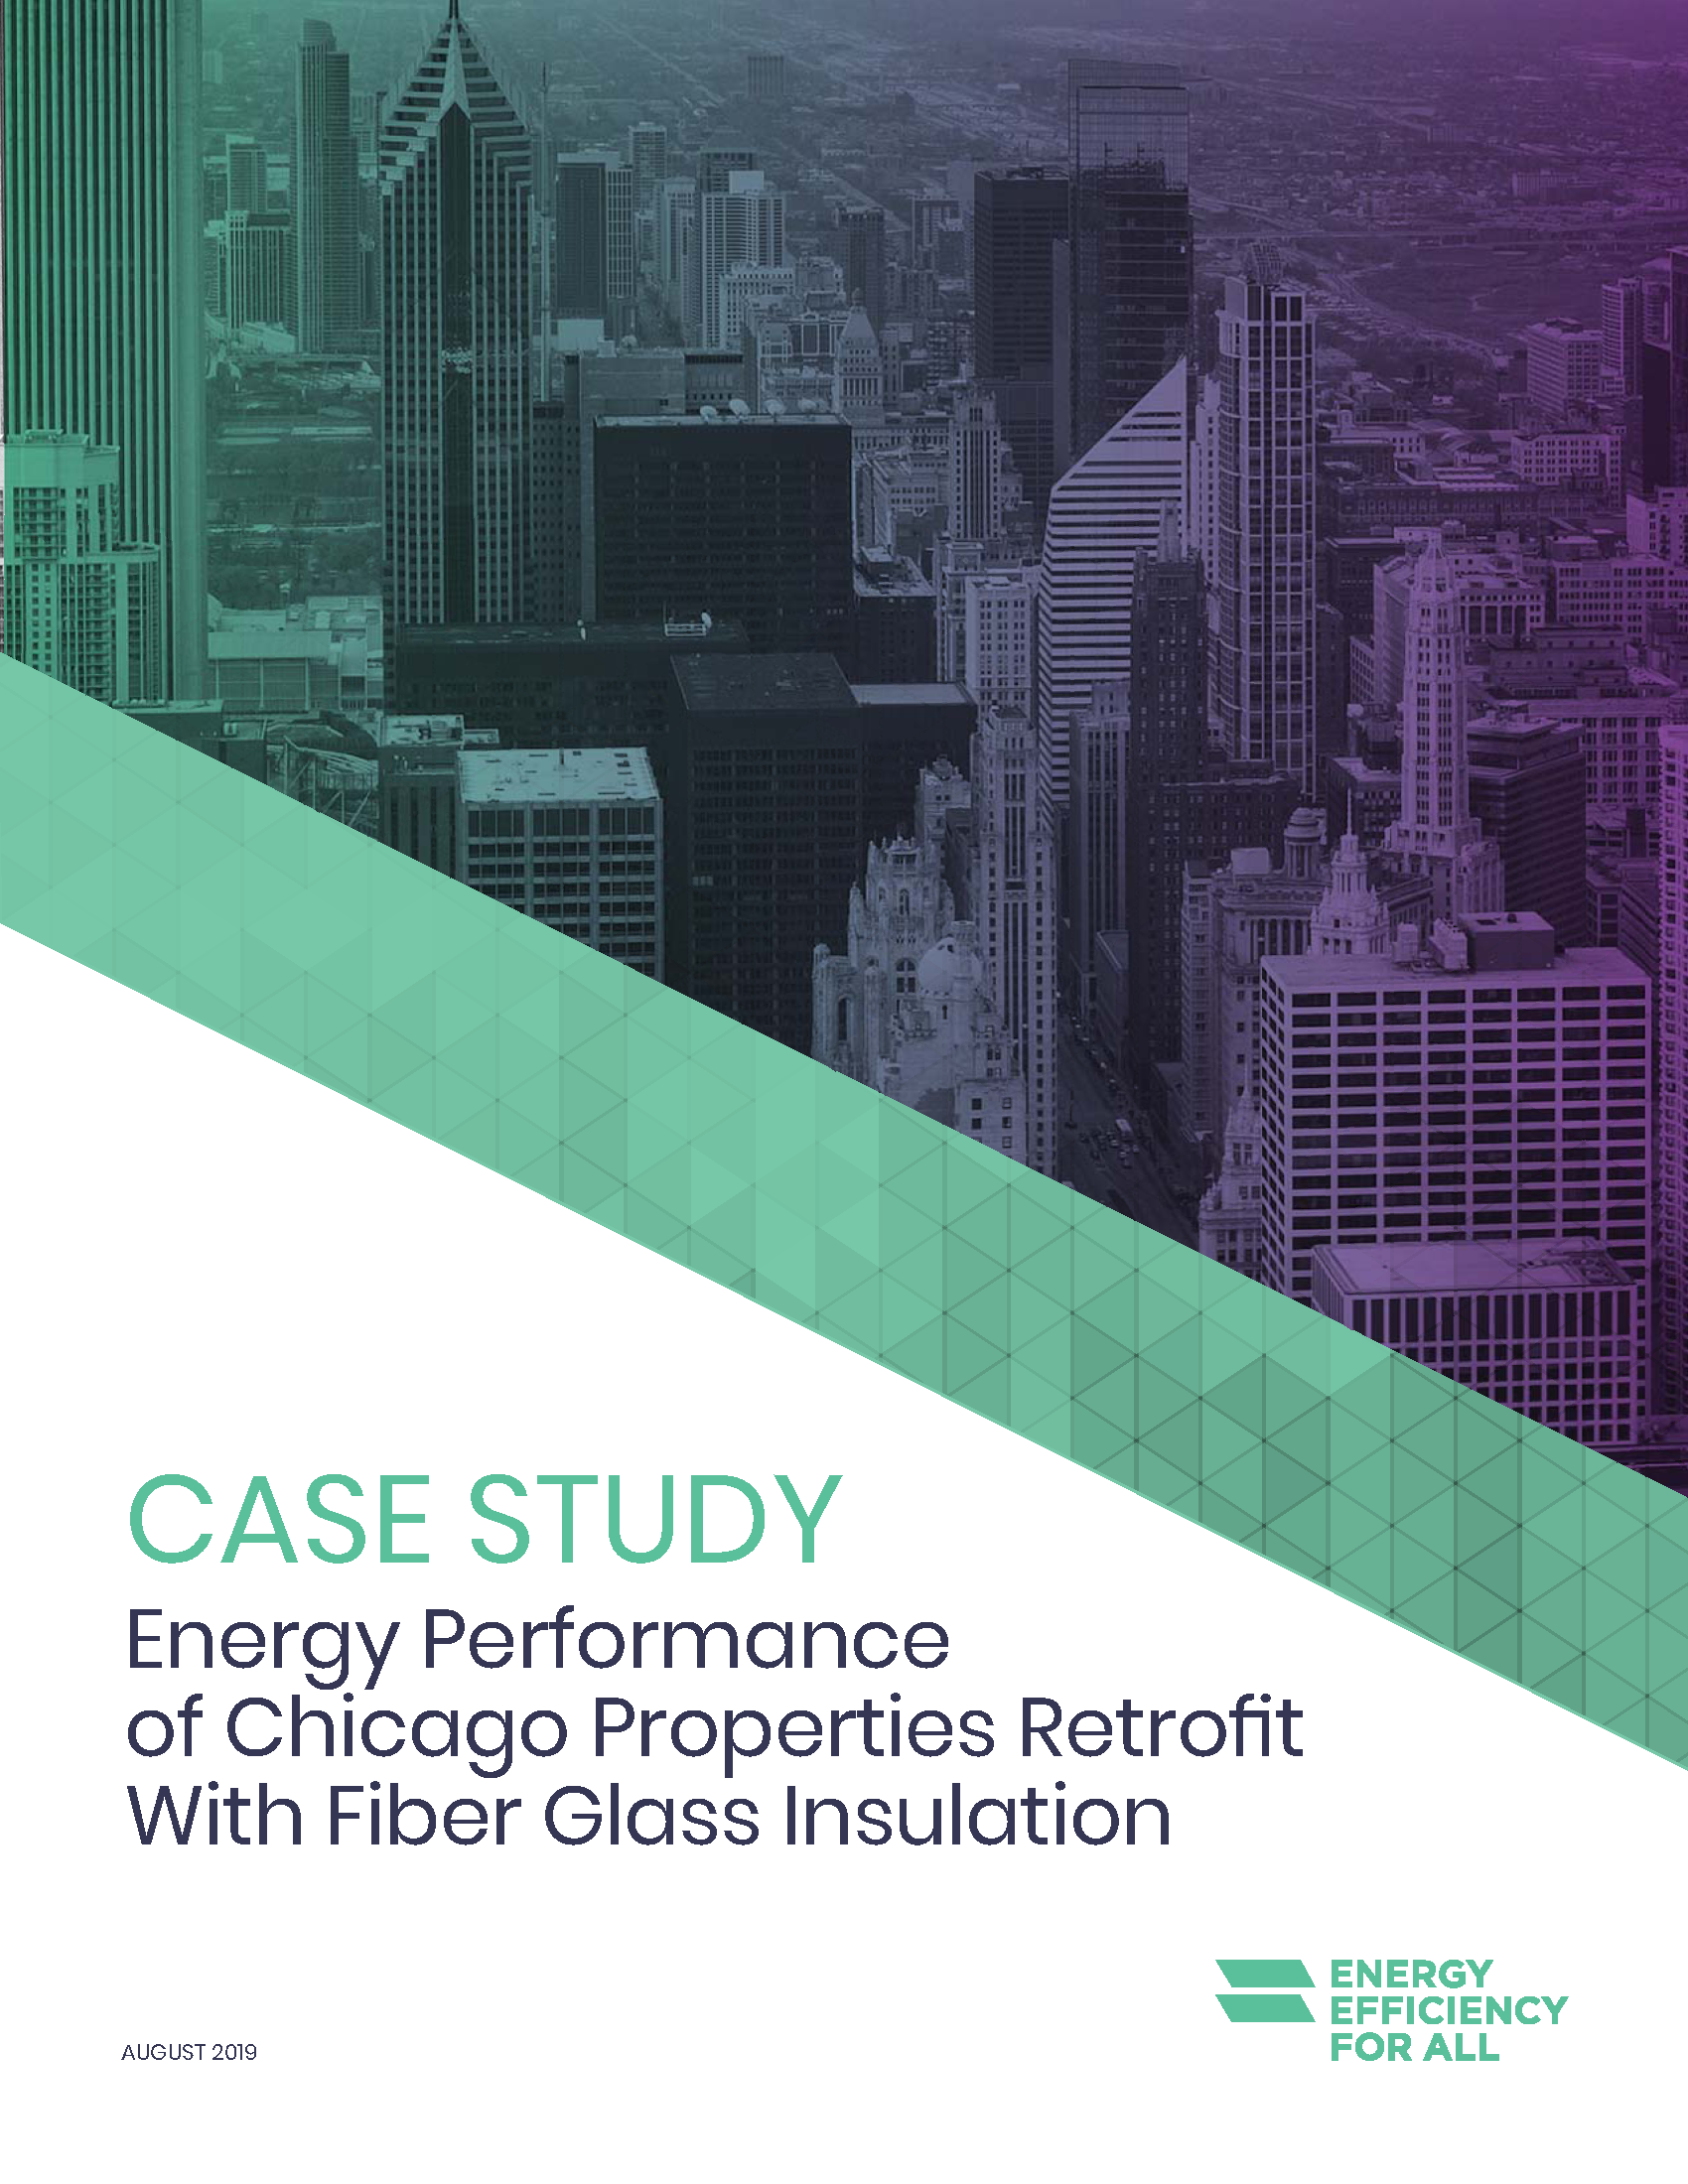 Healthy Building Materials Case Study: Energy Performance of Chicago Properties Retrofit With Fiber Glass Insulation